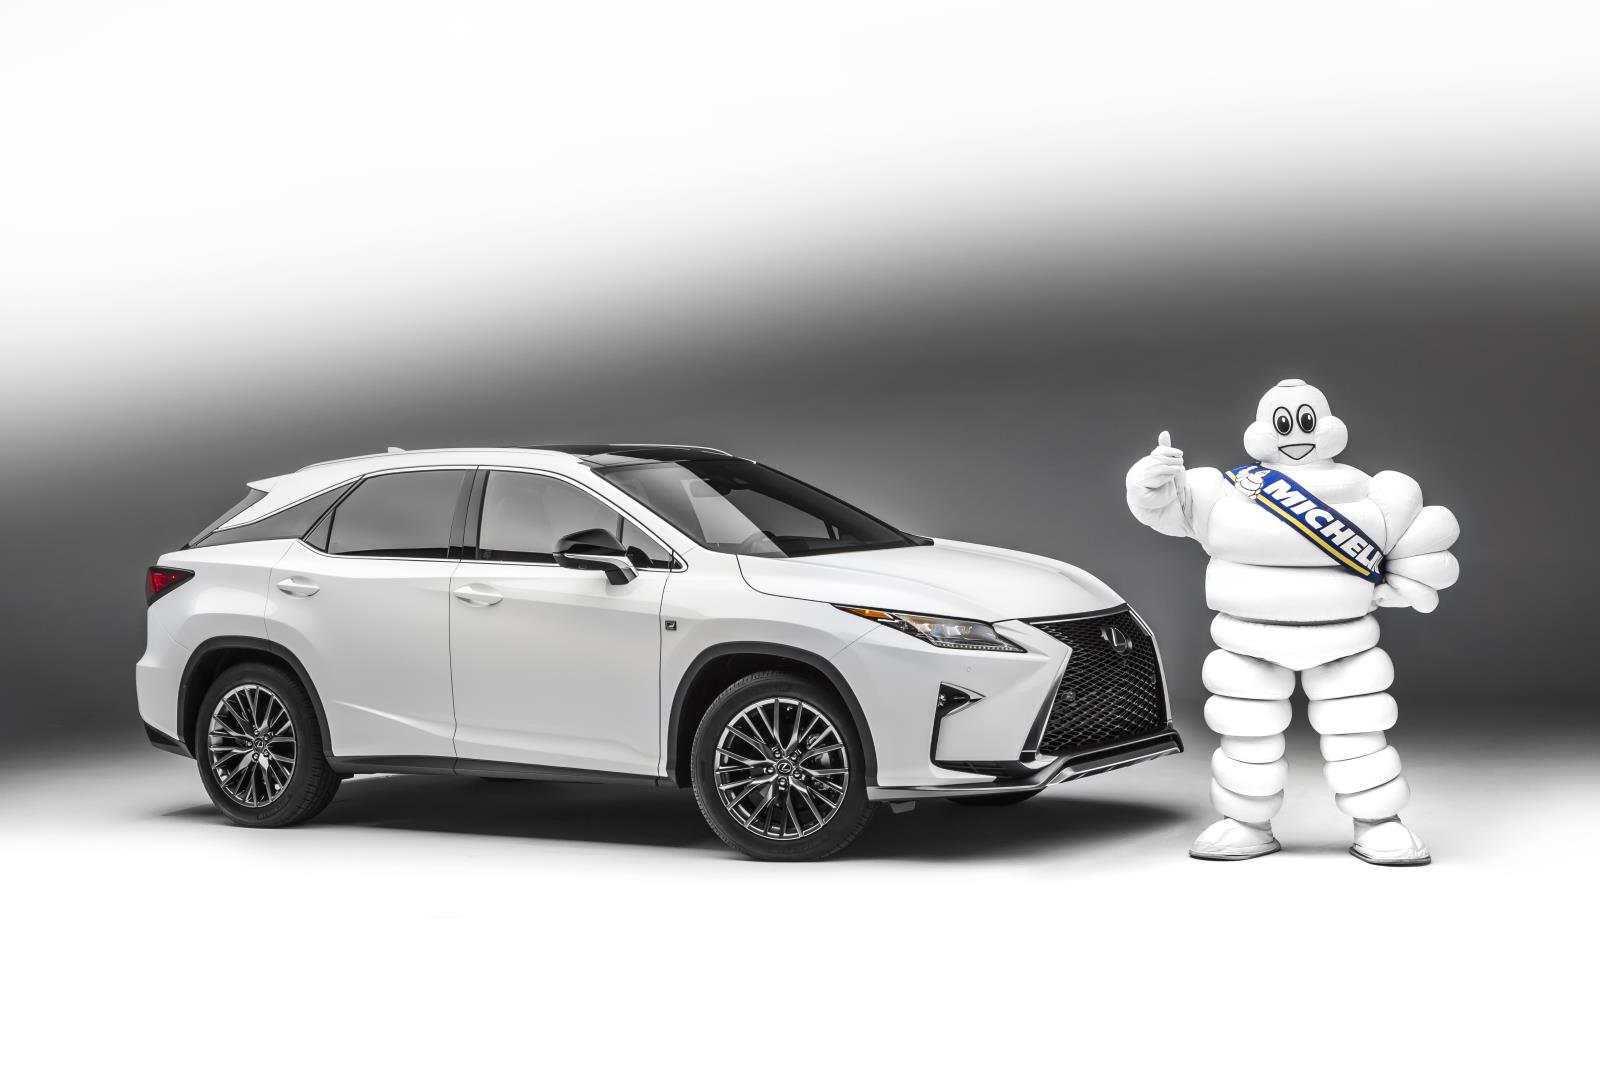 Michelin_Man_Lexus_RX.jpg